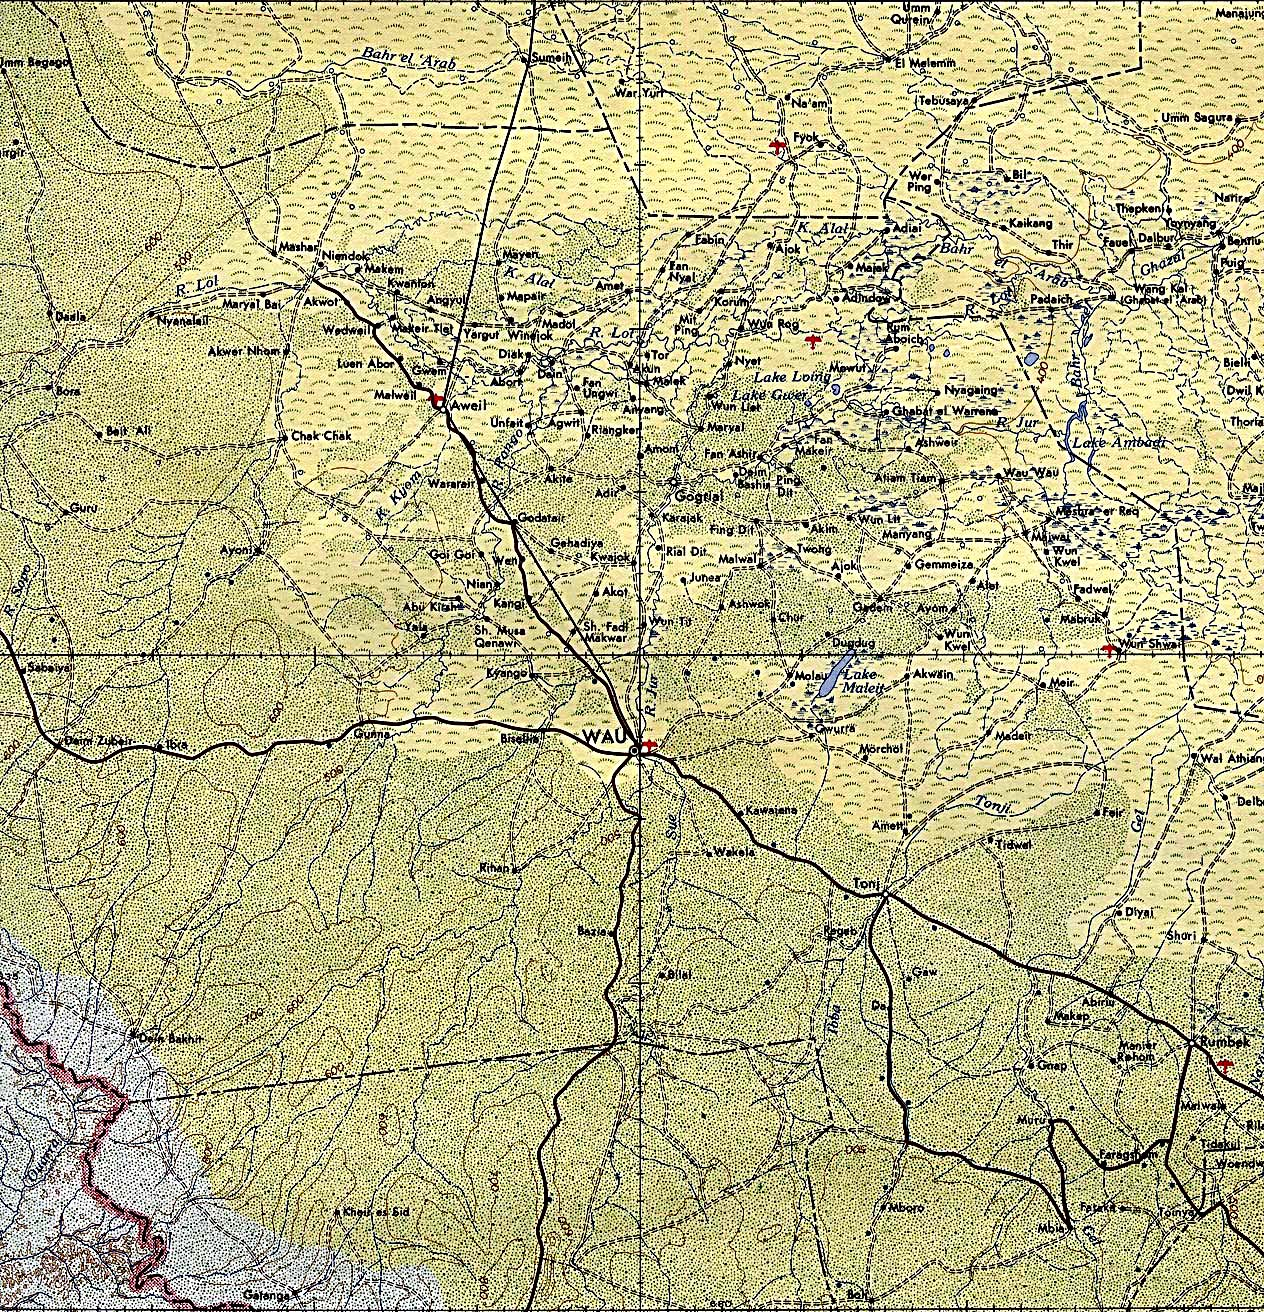 Wau Area Topographic Map, Sudan